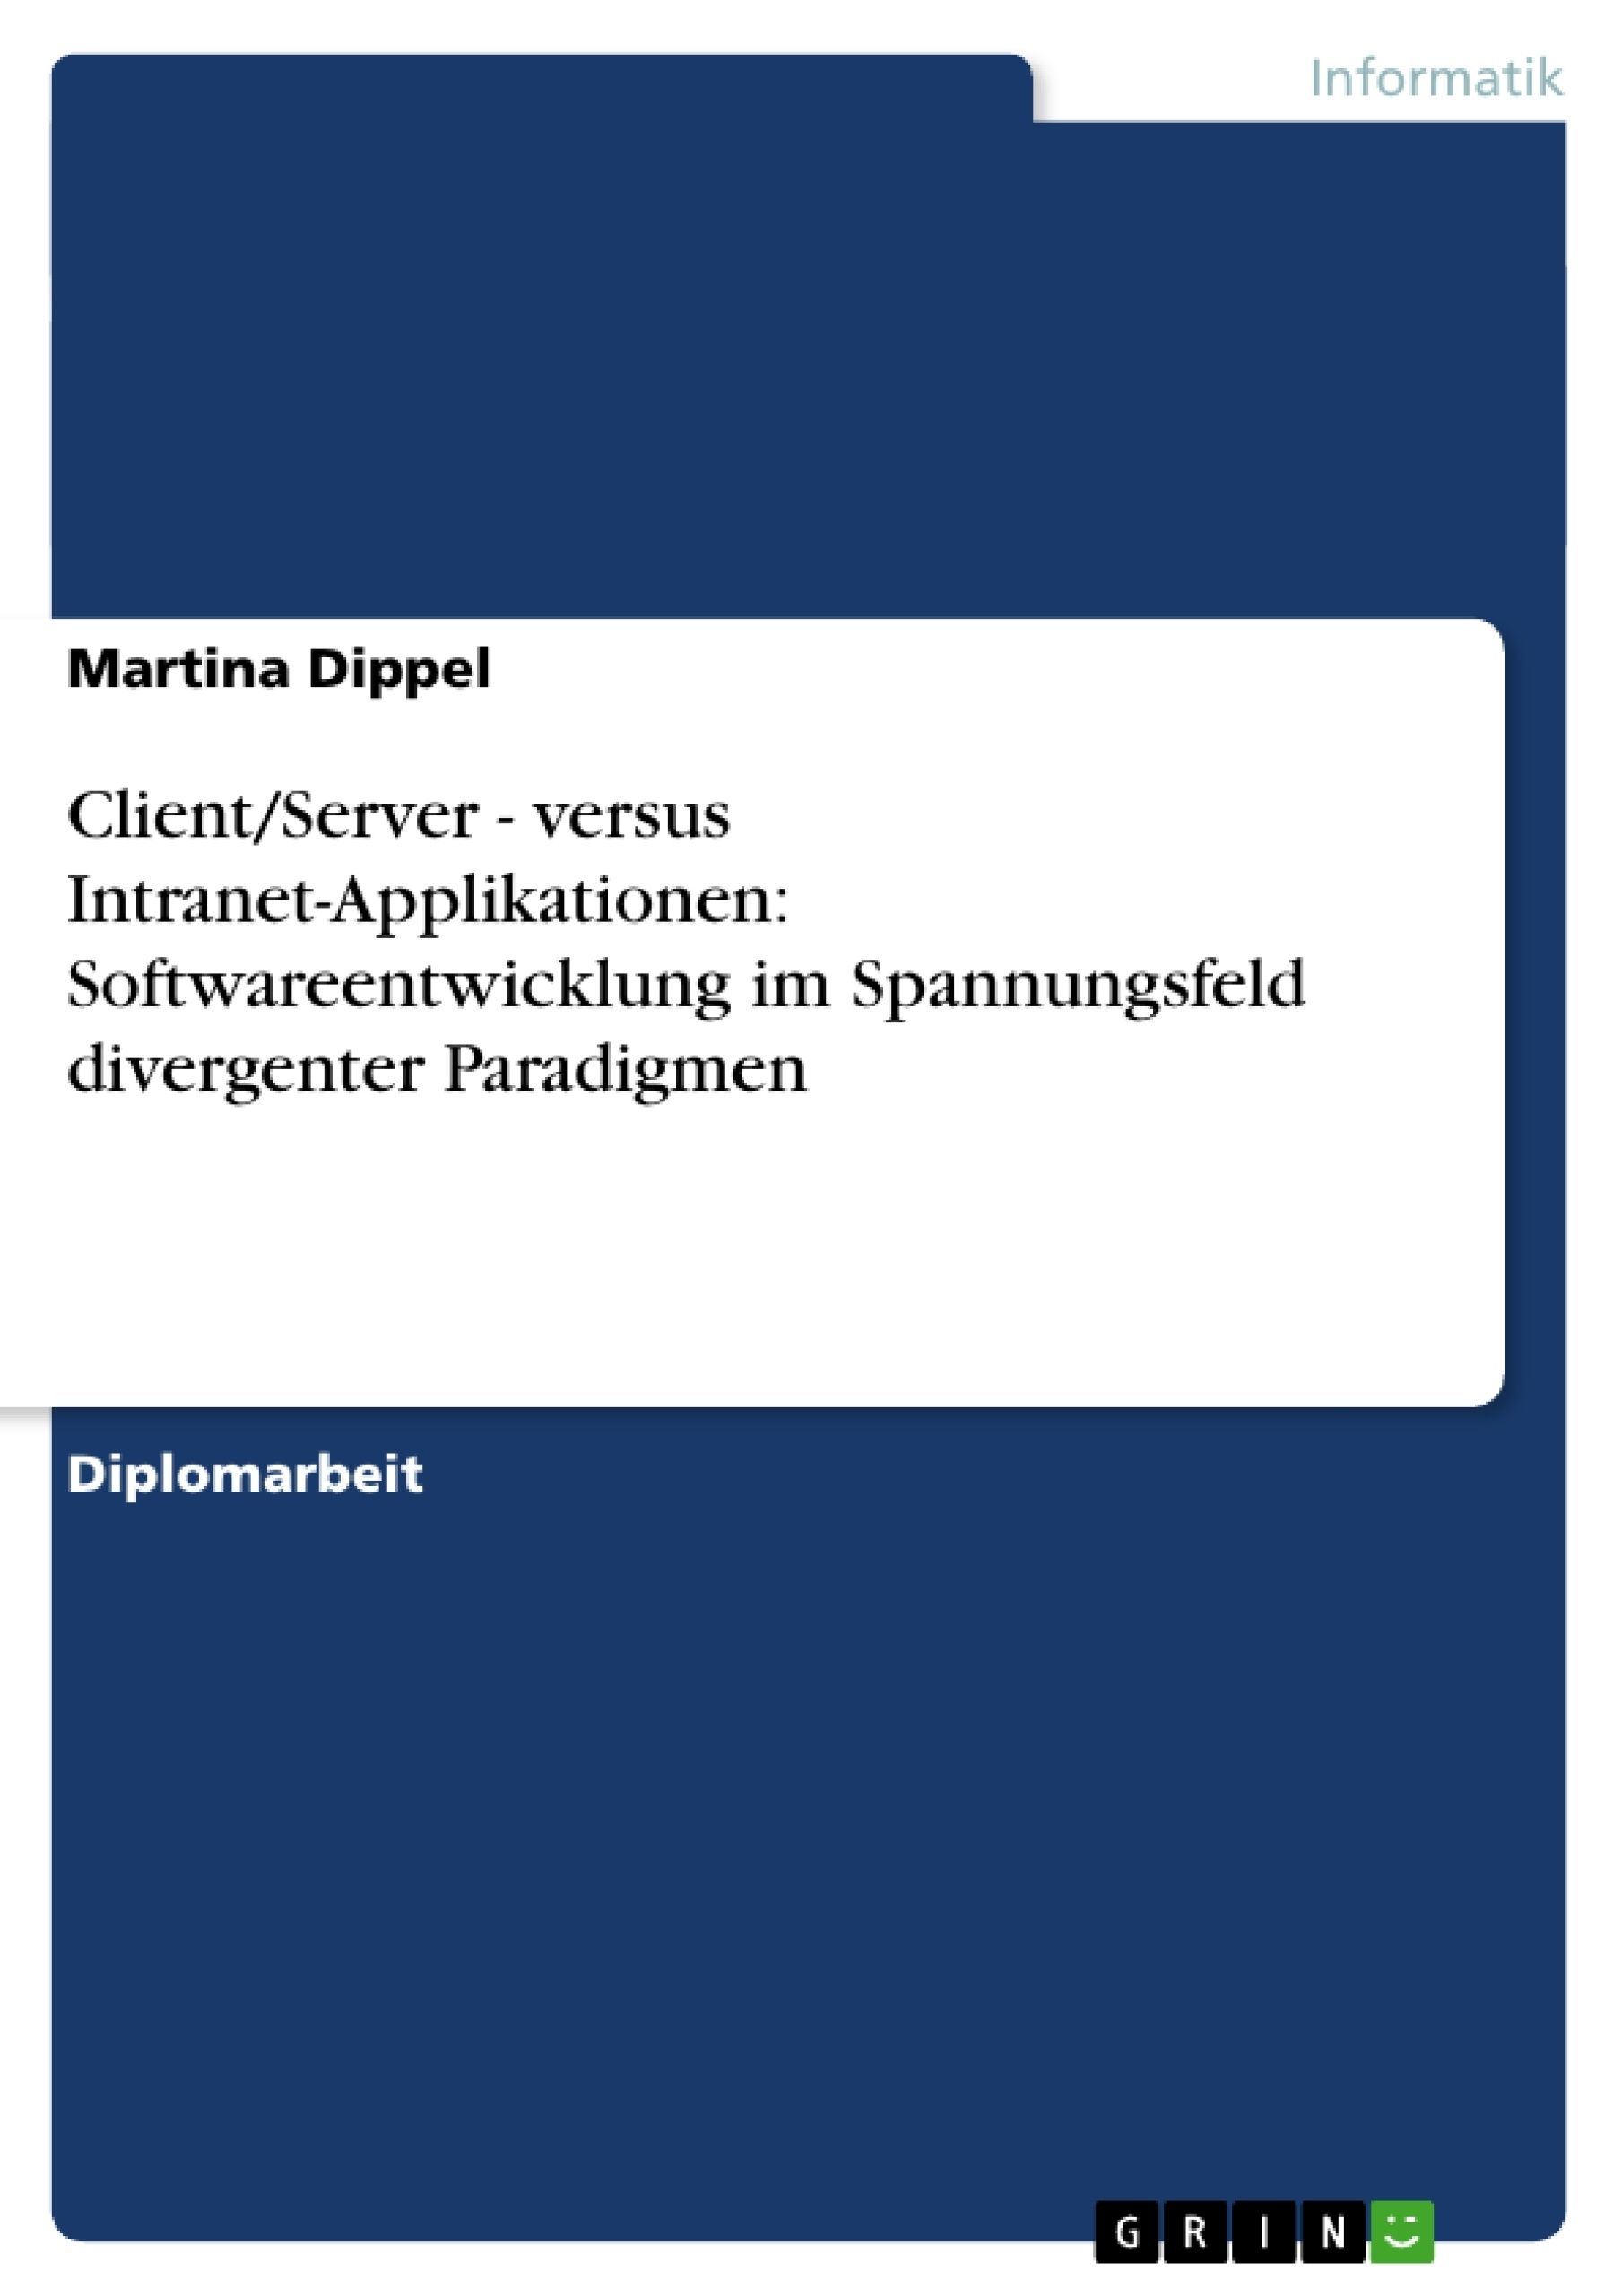 Titel: Client/Server - versus Intranet-Applikationen: Softwareentwicklung im Spannungsfeld divergenter Paradigmen